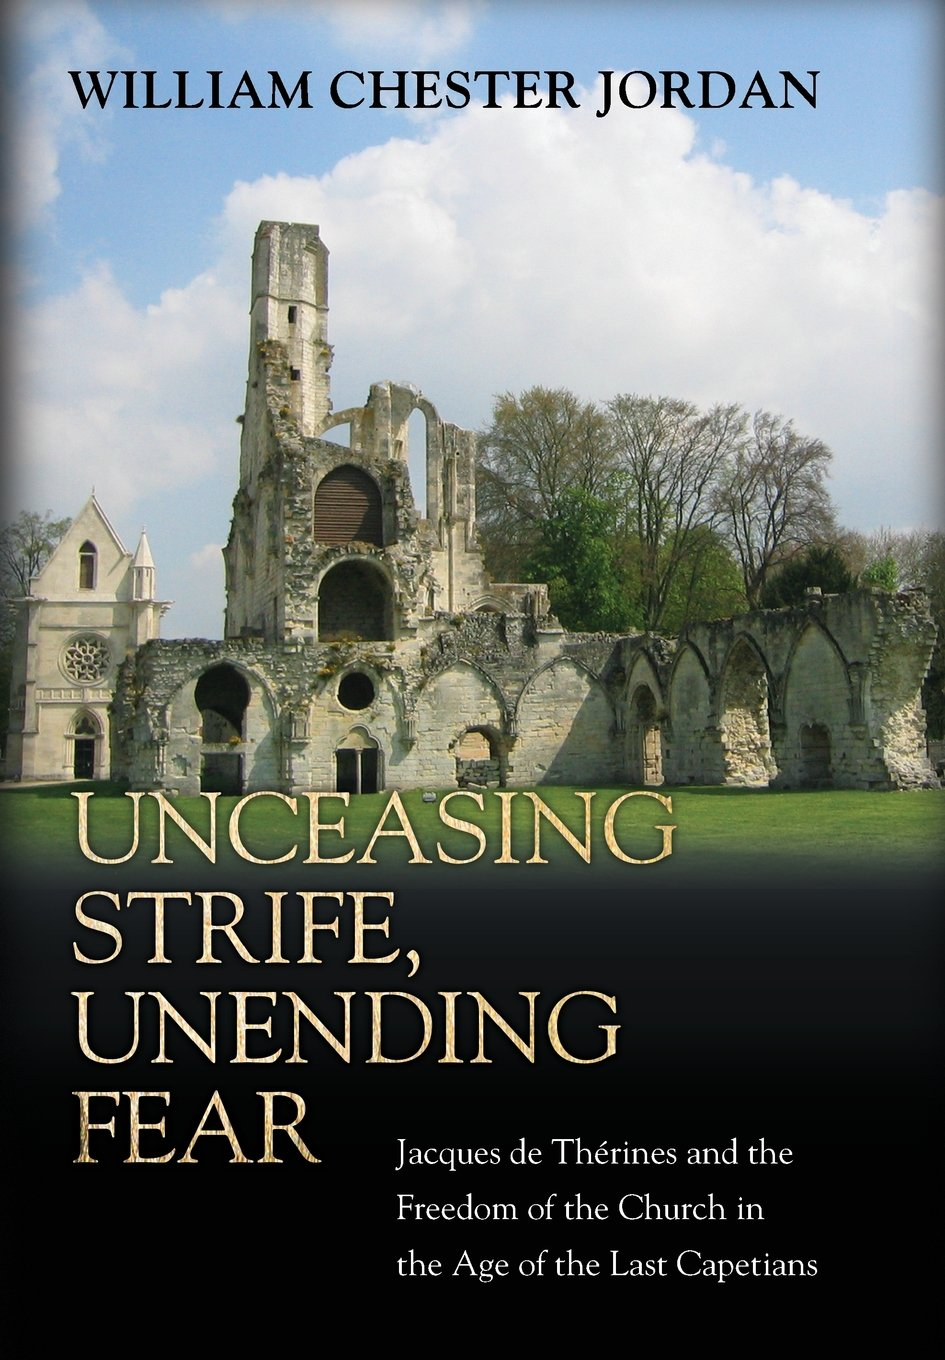 Download Unceasing Strife, Unending Fear: Jacques de Thérines and the Freedom of the Church in the Age of the Last Capetians pdf